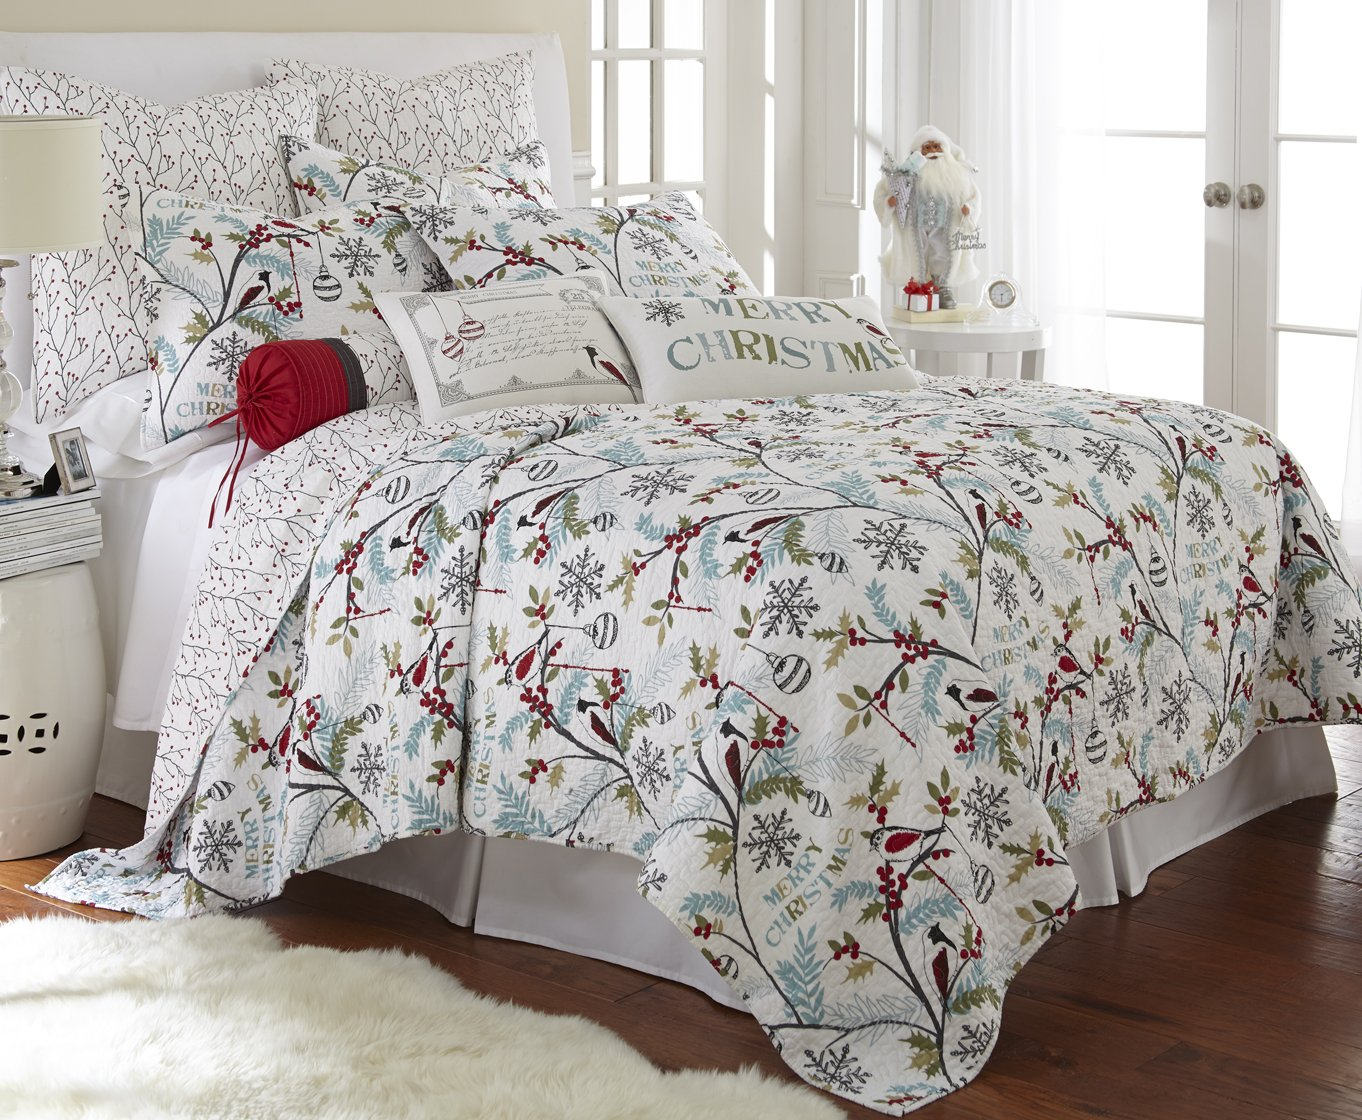 bedding christmas to in the down style ideal wilko count home ideas best bed sleeps